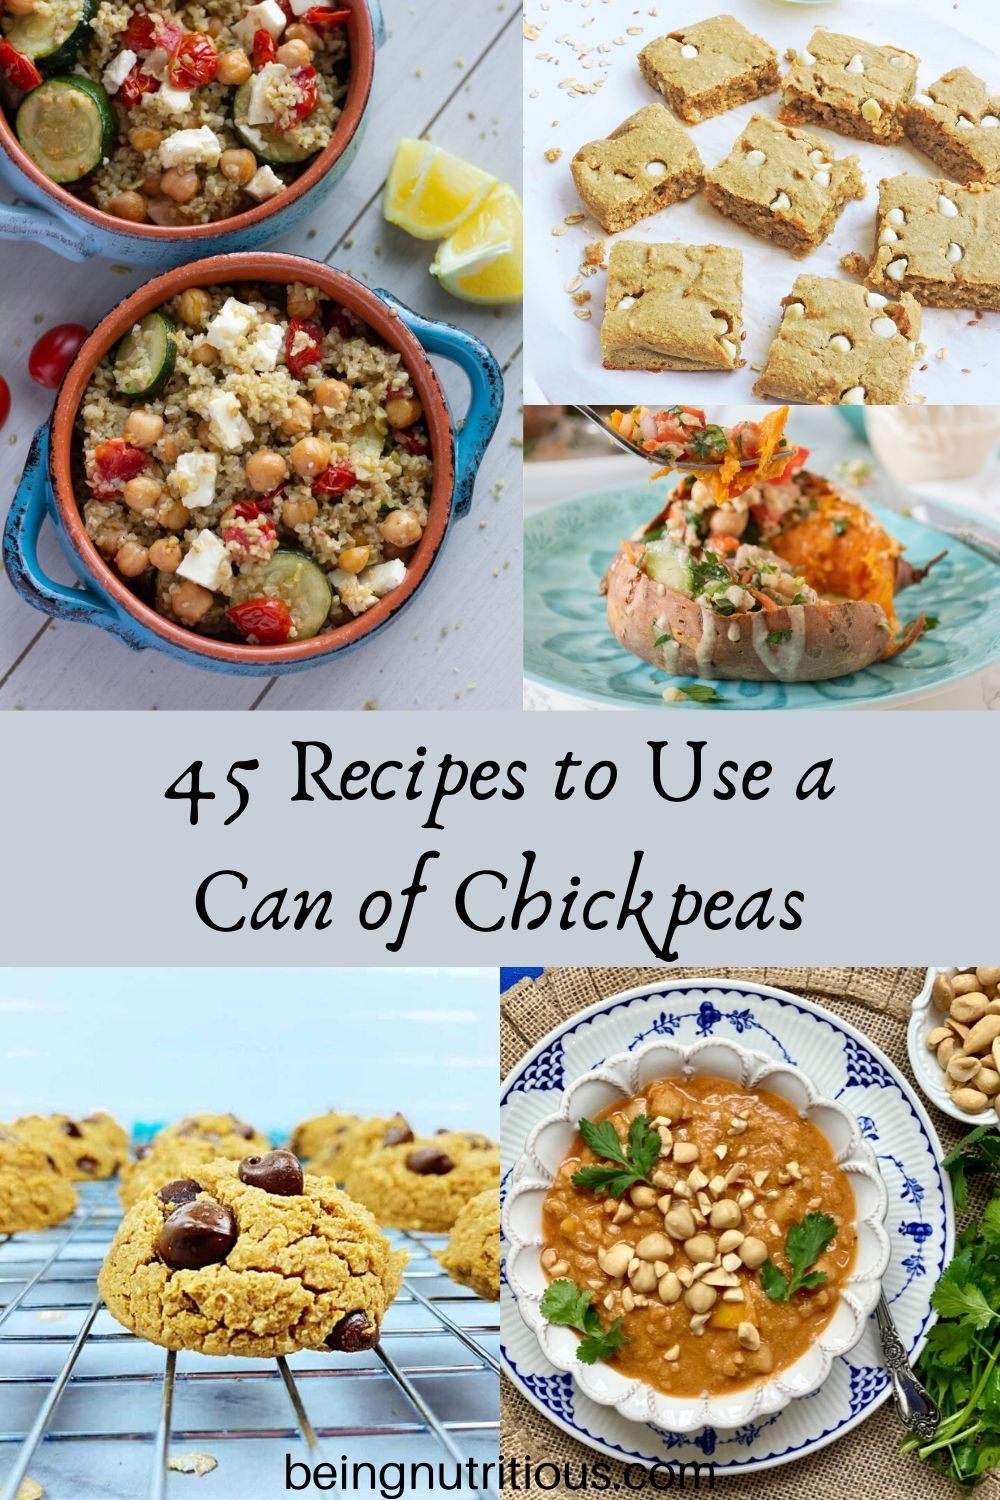 45 Recipes to Use a Can of Chickpeas